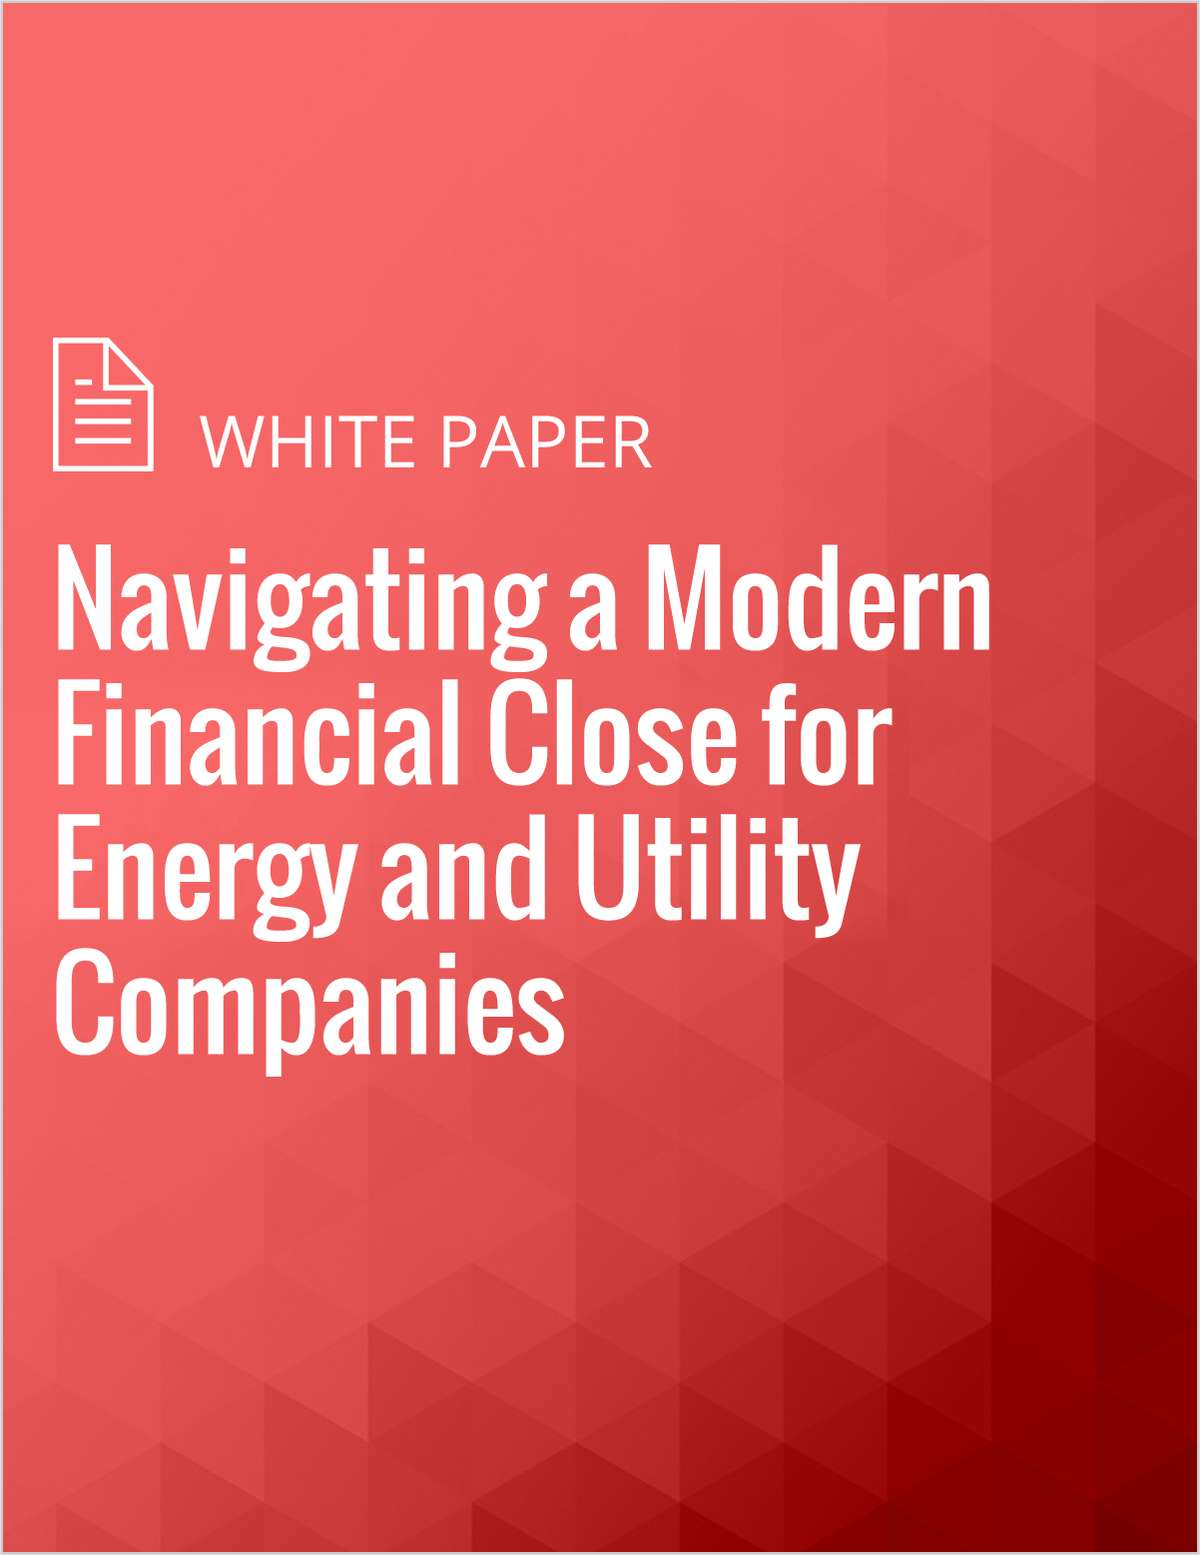 Navigating a Modern Financial Close for Energy and Utility Companies